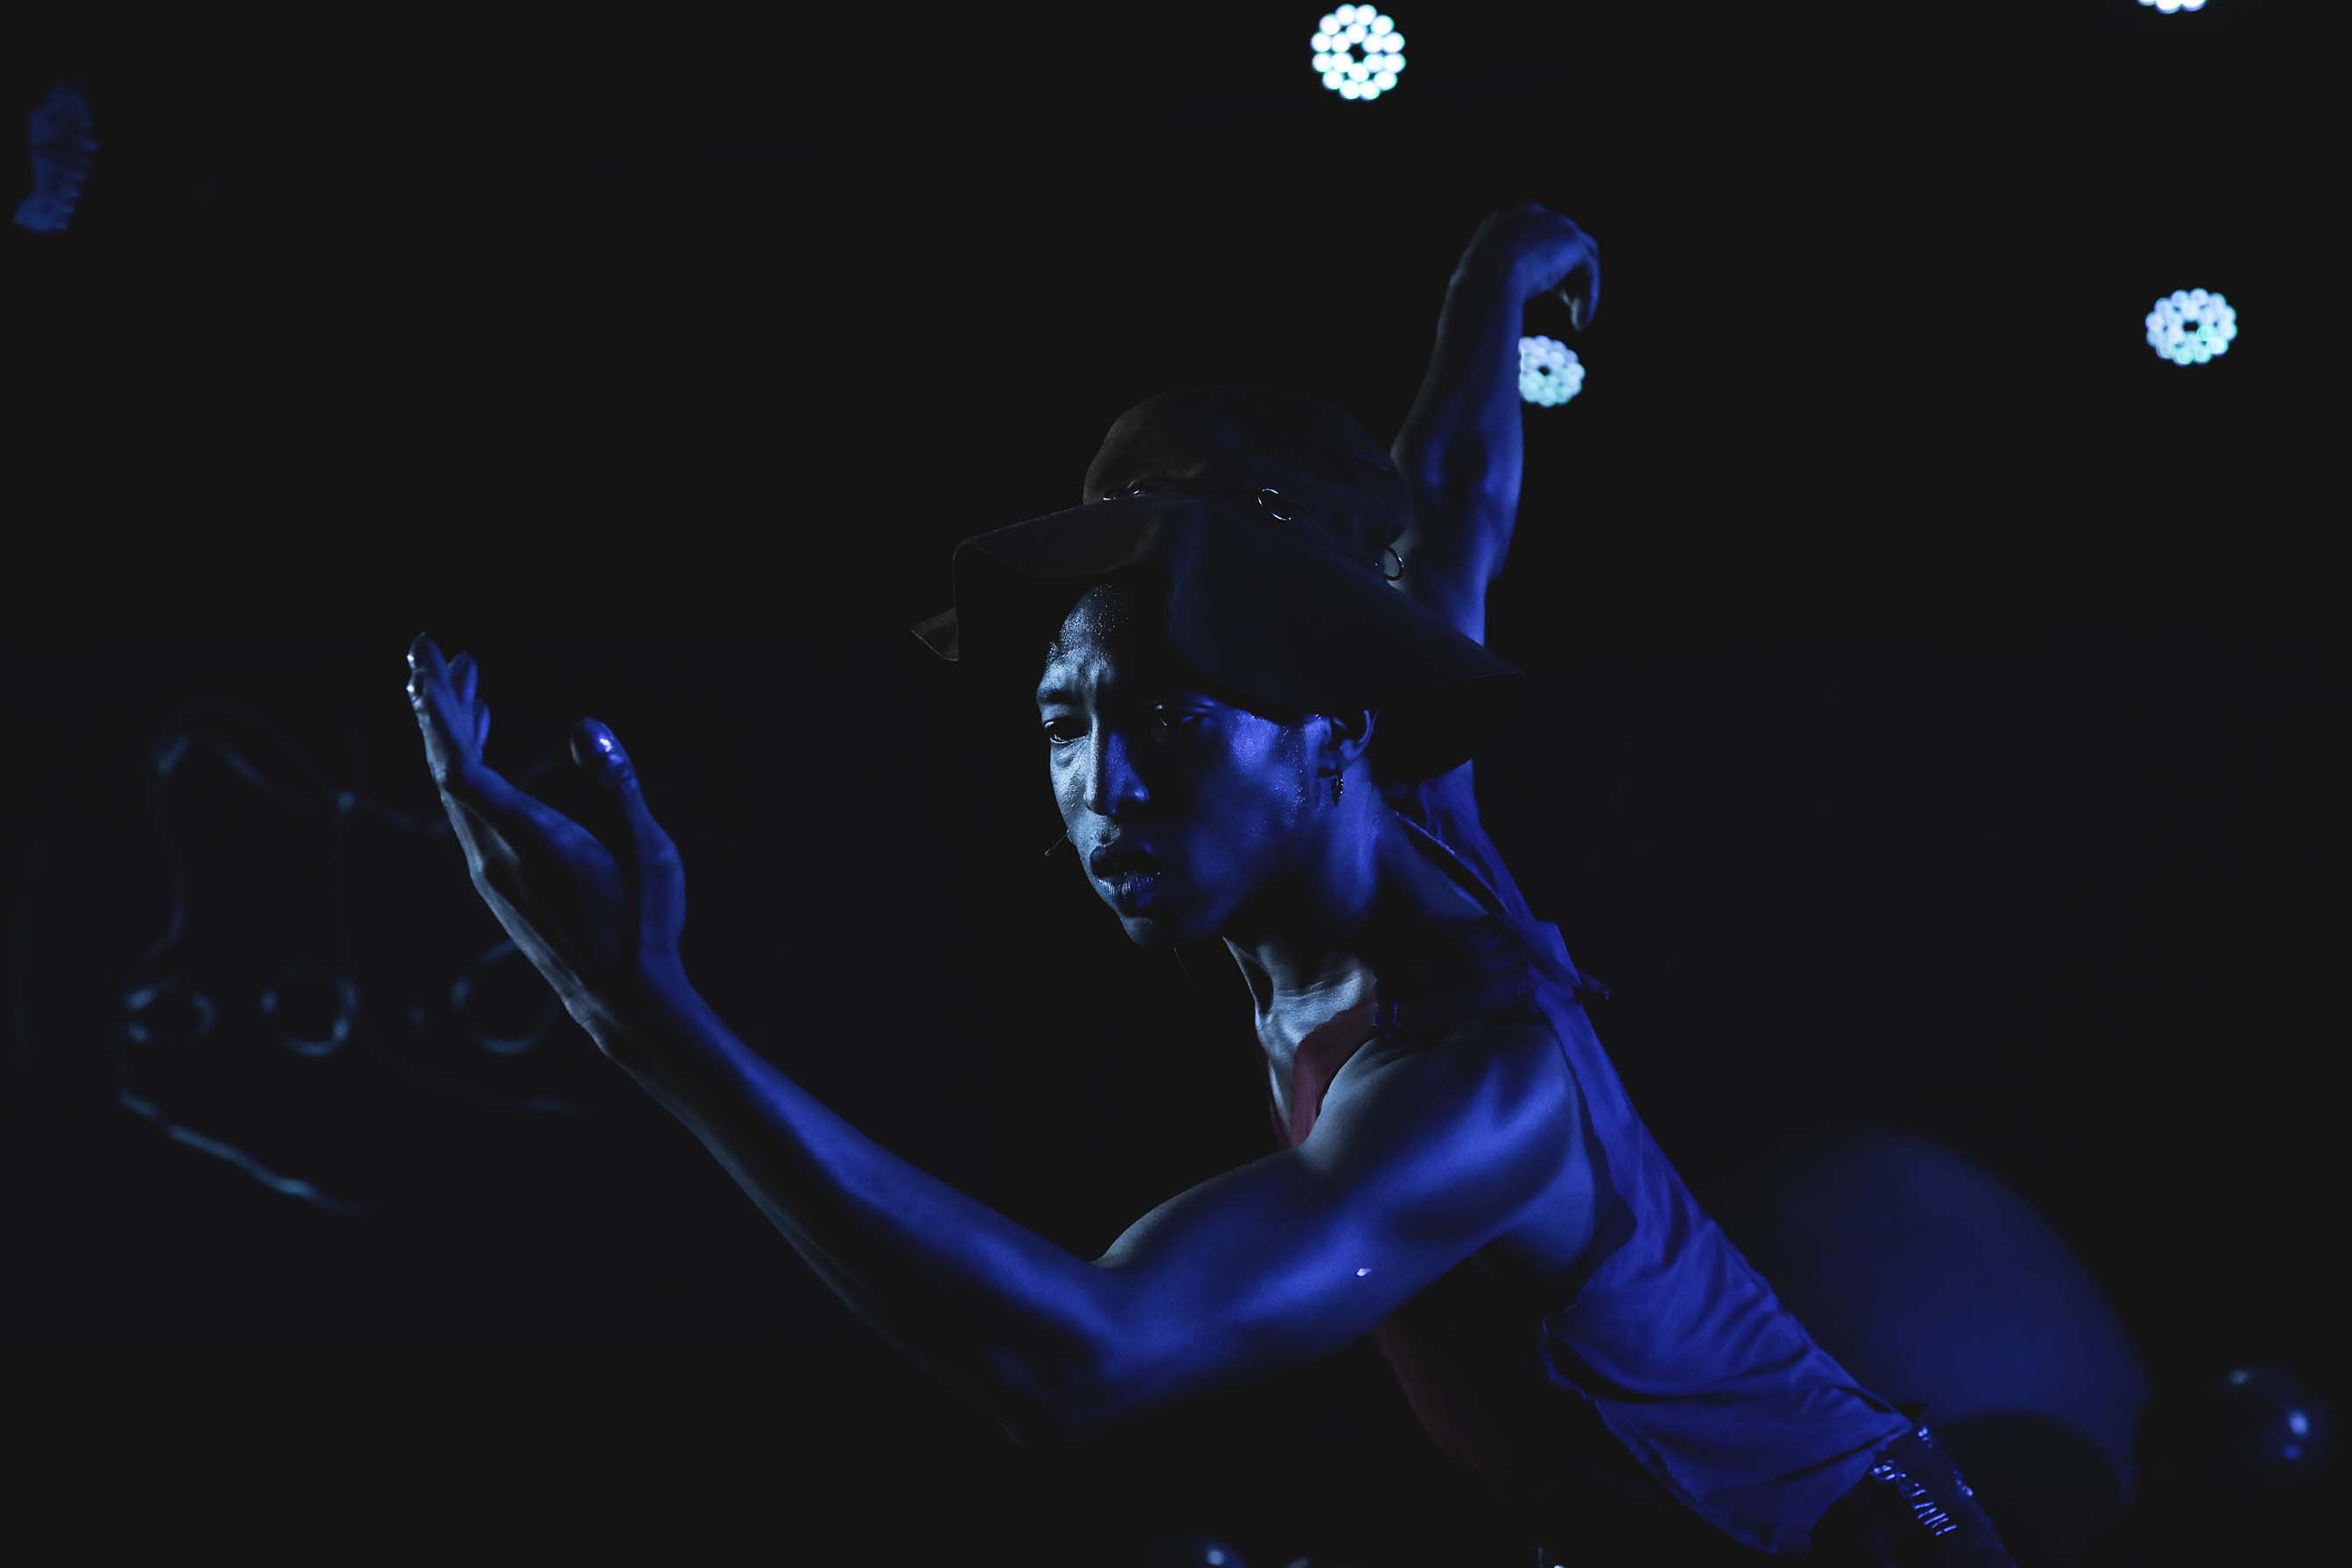 person dancing lit by blue light